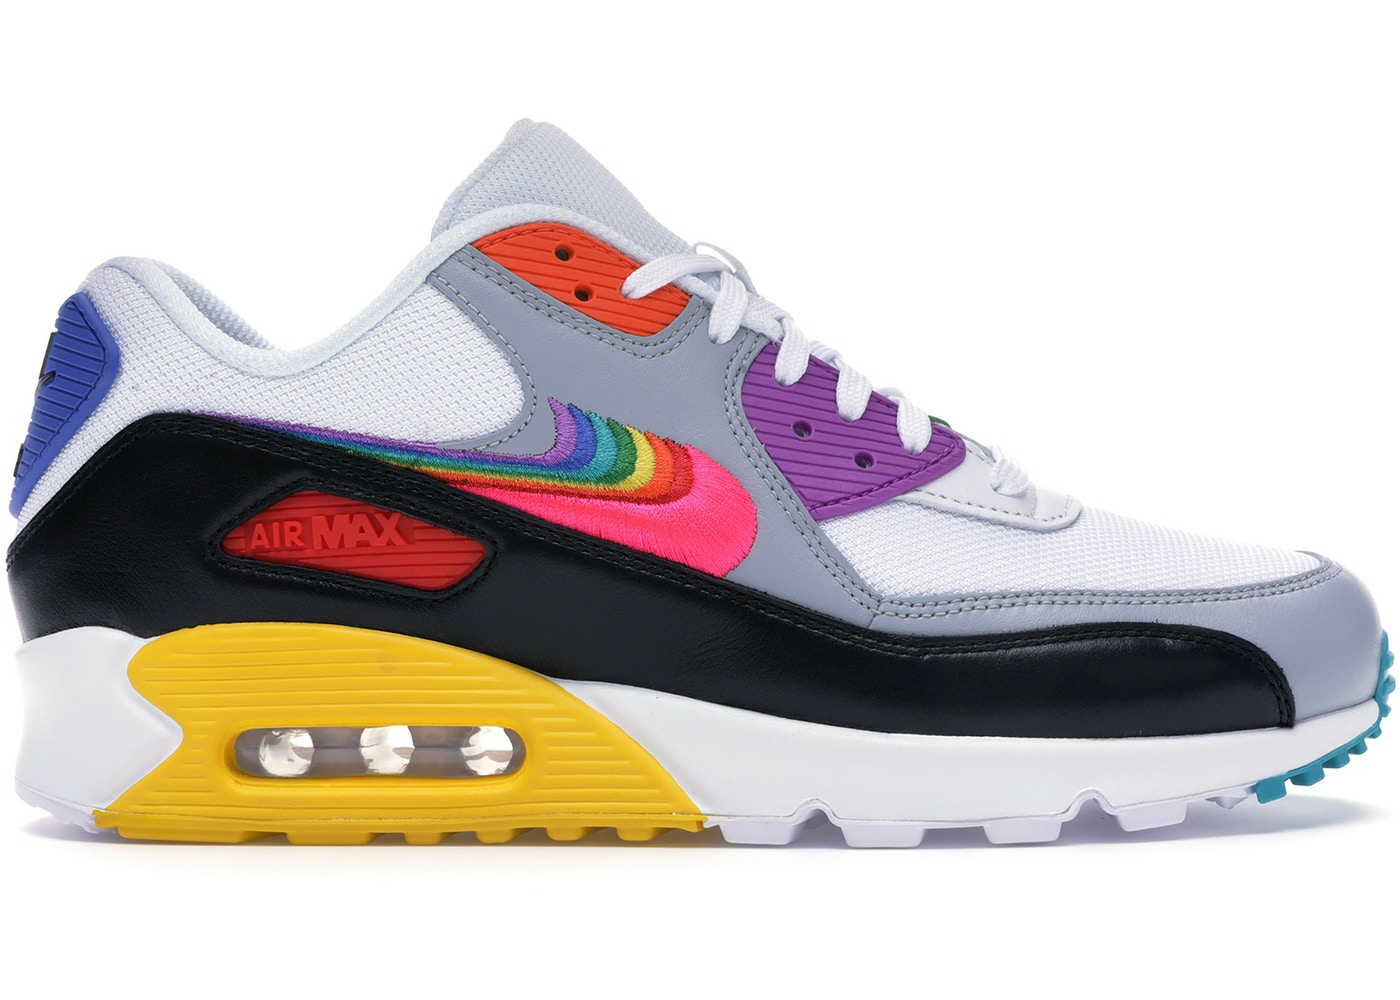 meilleures baskets e69b8 3ad6a Air Max 90 Be True (2019)